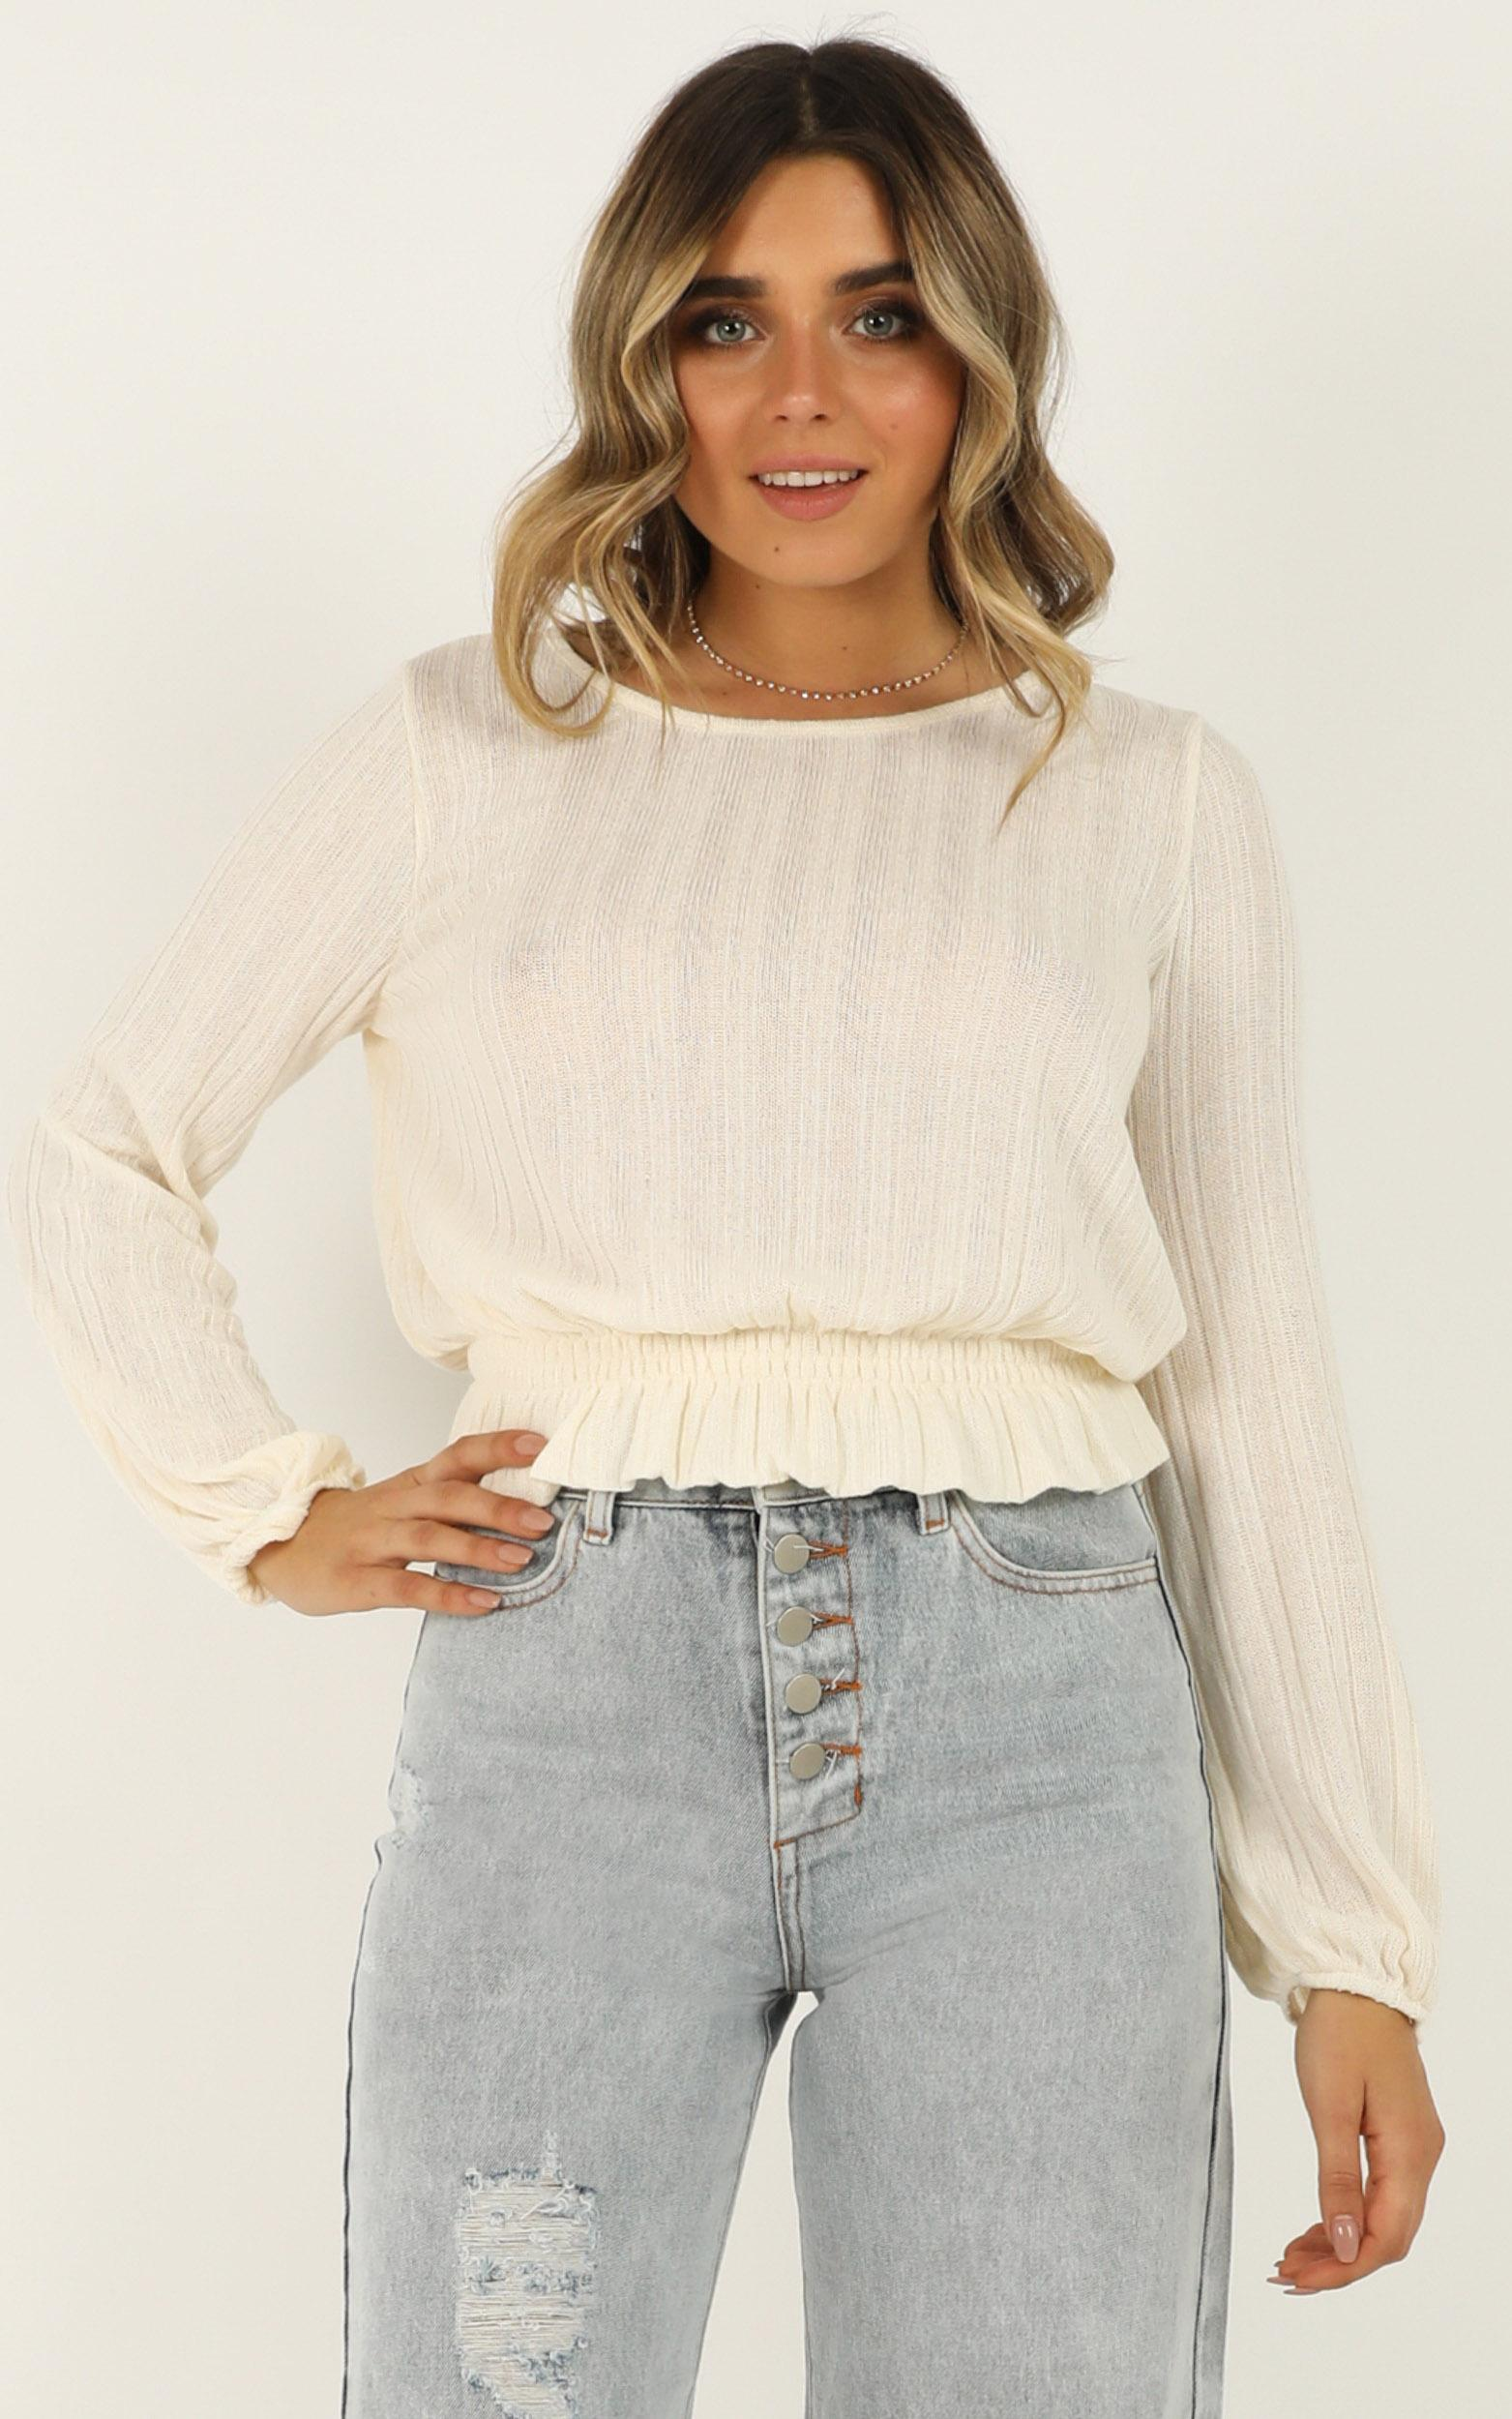 Cloudy Day knit top in cream - 12 (L), Cream, hi-res image number null